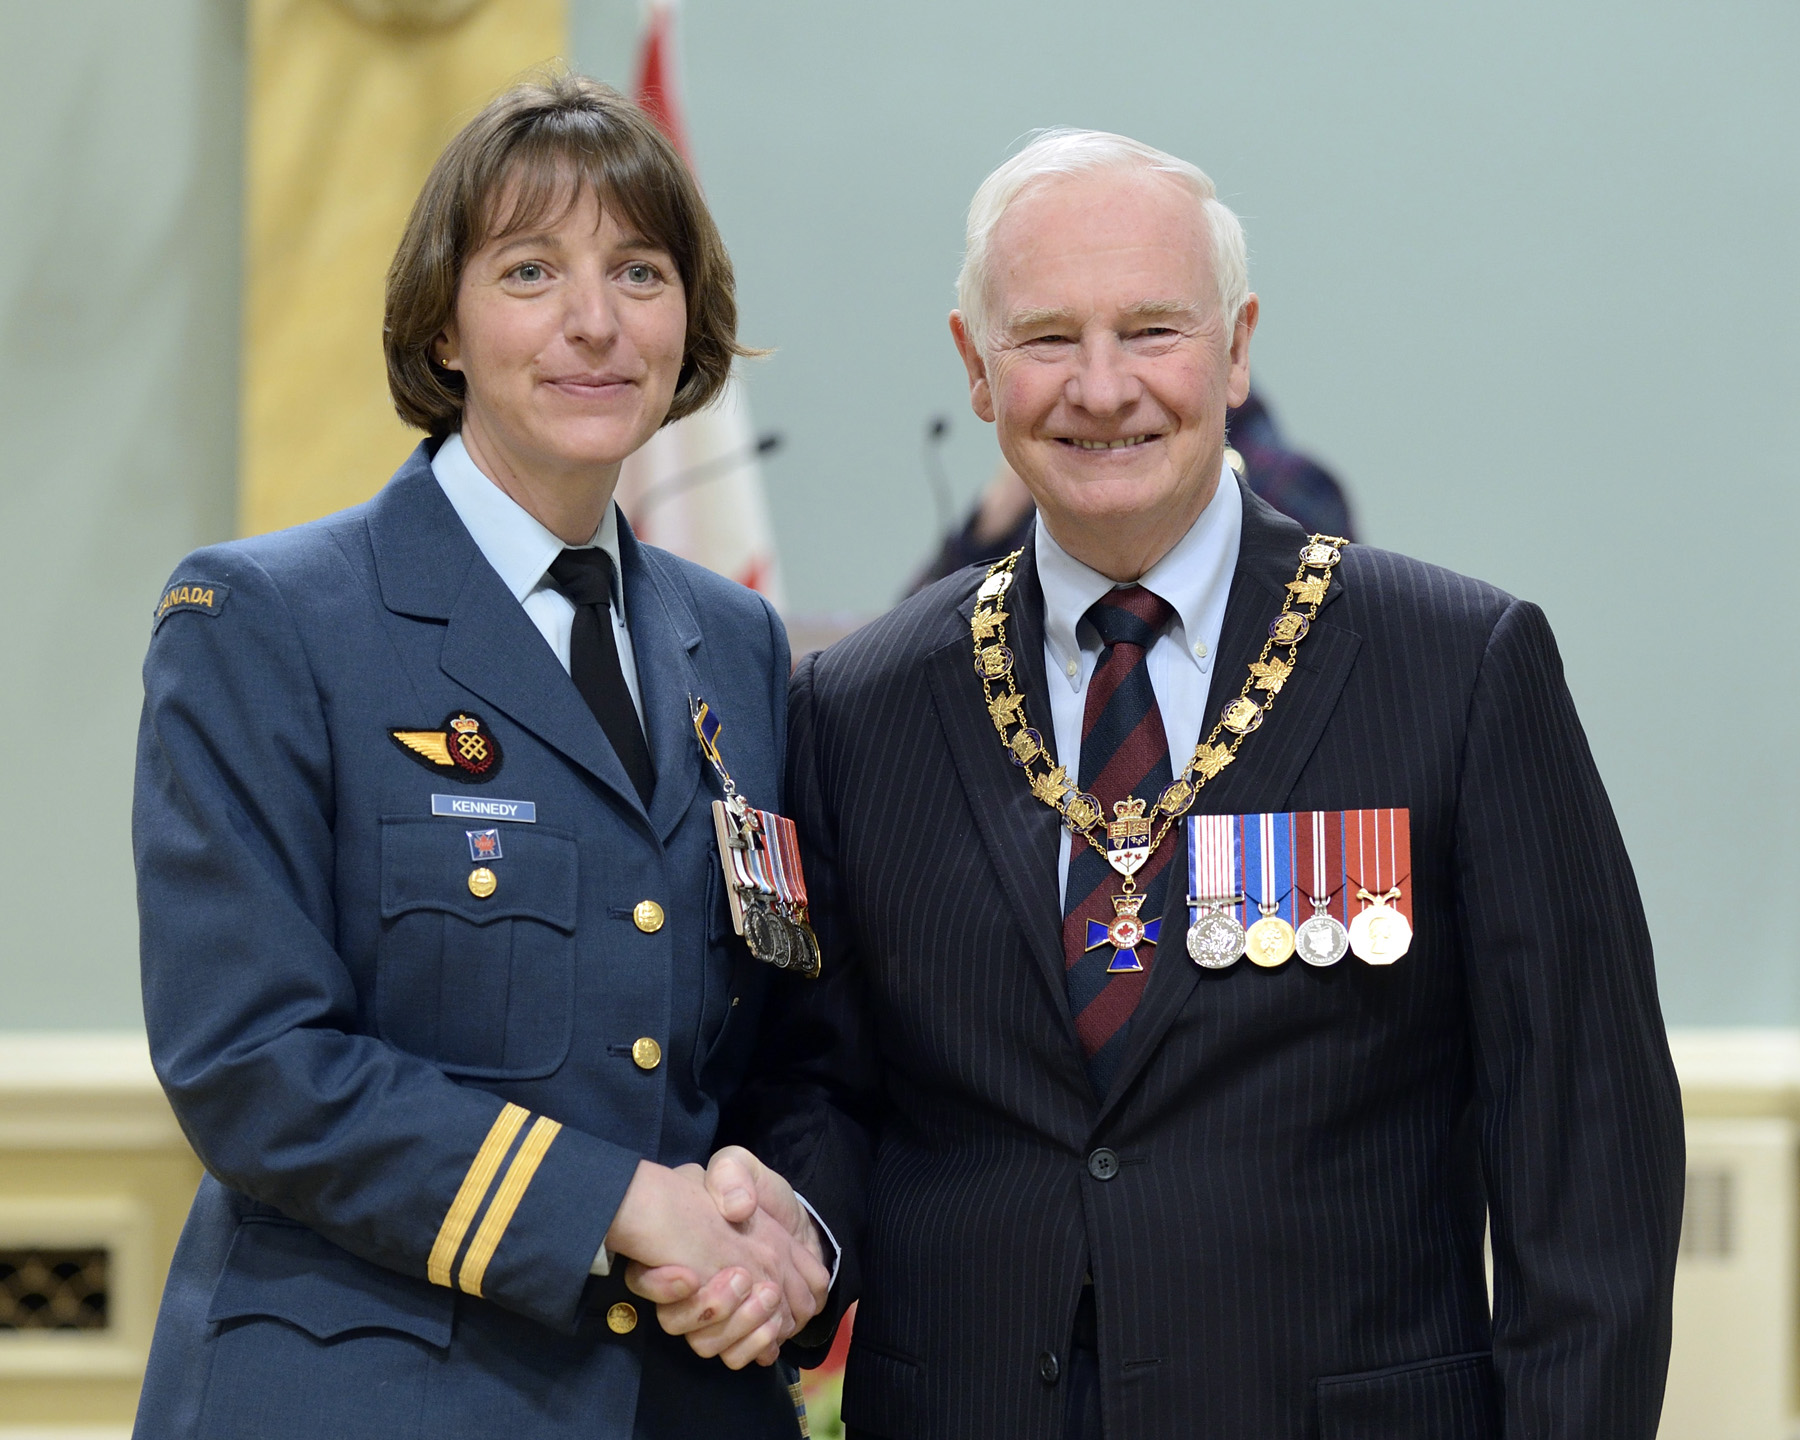 His Excellency presented the Order of Military Merit at the Member level (M.M.M.) to Captain Jennifer Kennedy, M.M.M., C.D., 8 Wing (Astra, Ont.).